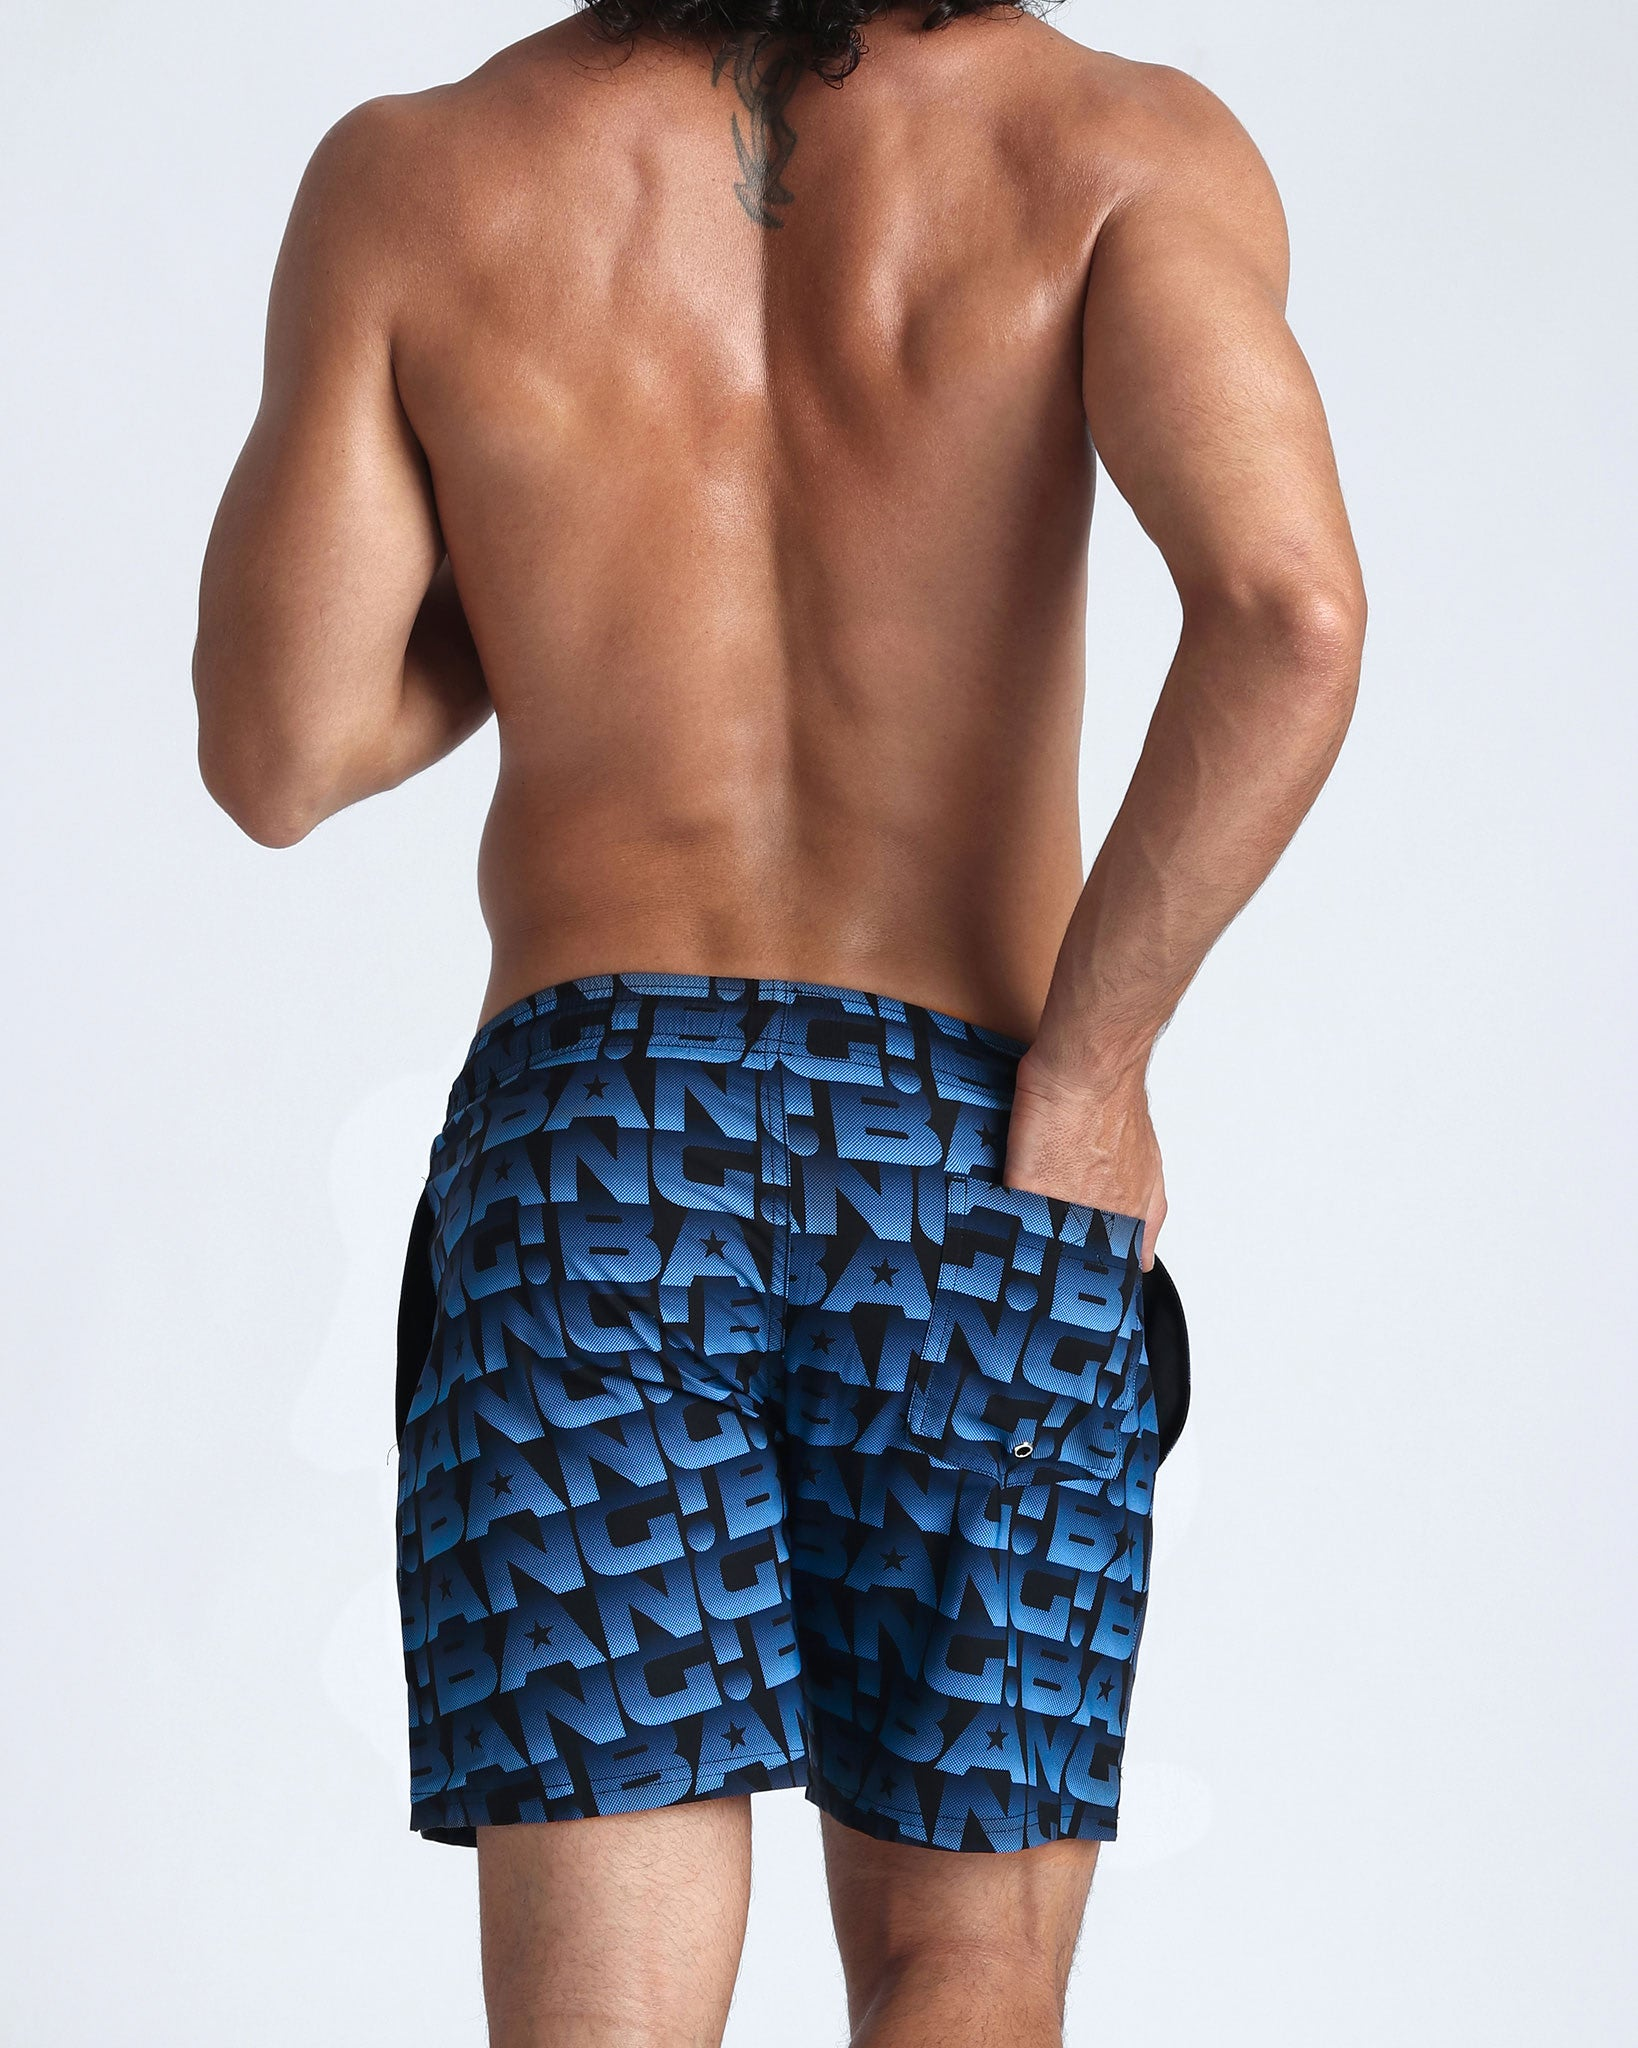 ESCAPADE Resort Shorts Bang Clothes Men Swimwear Swimsuits